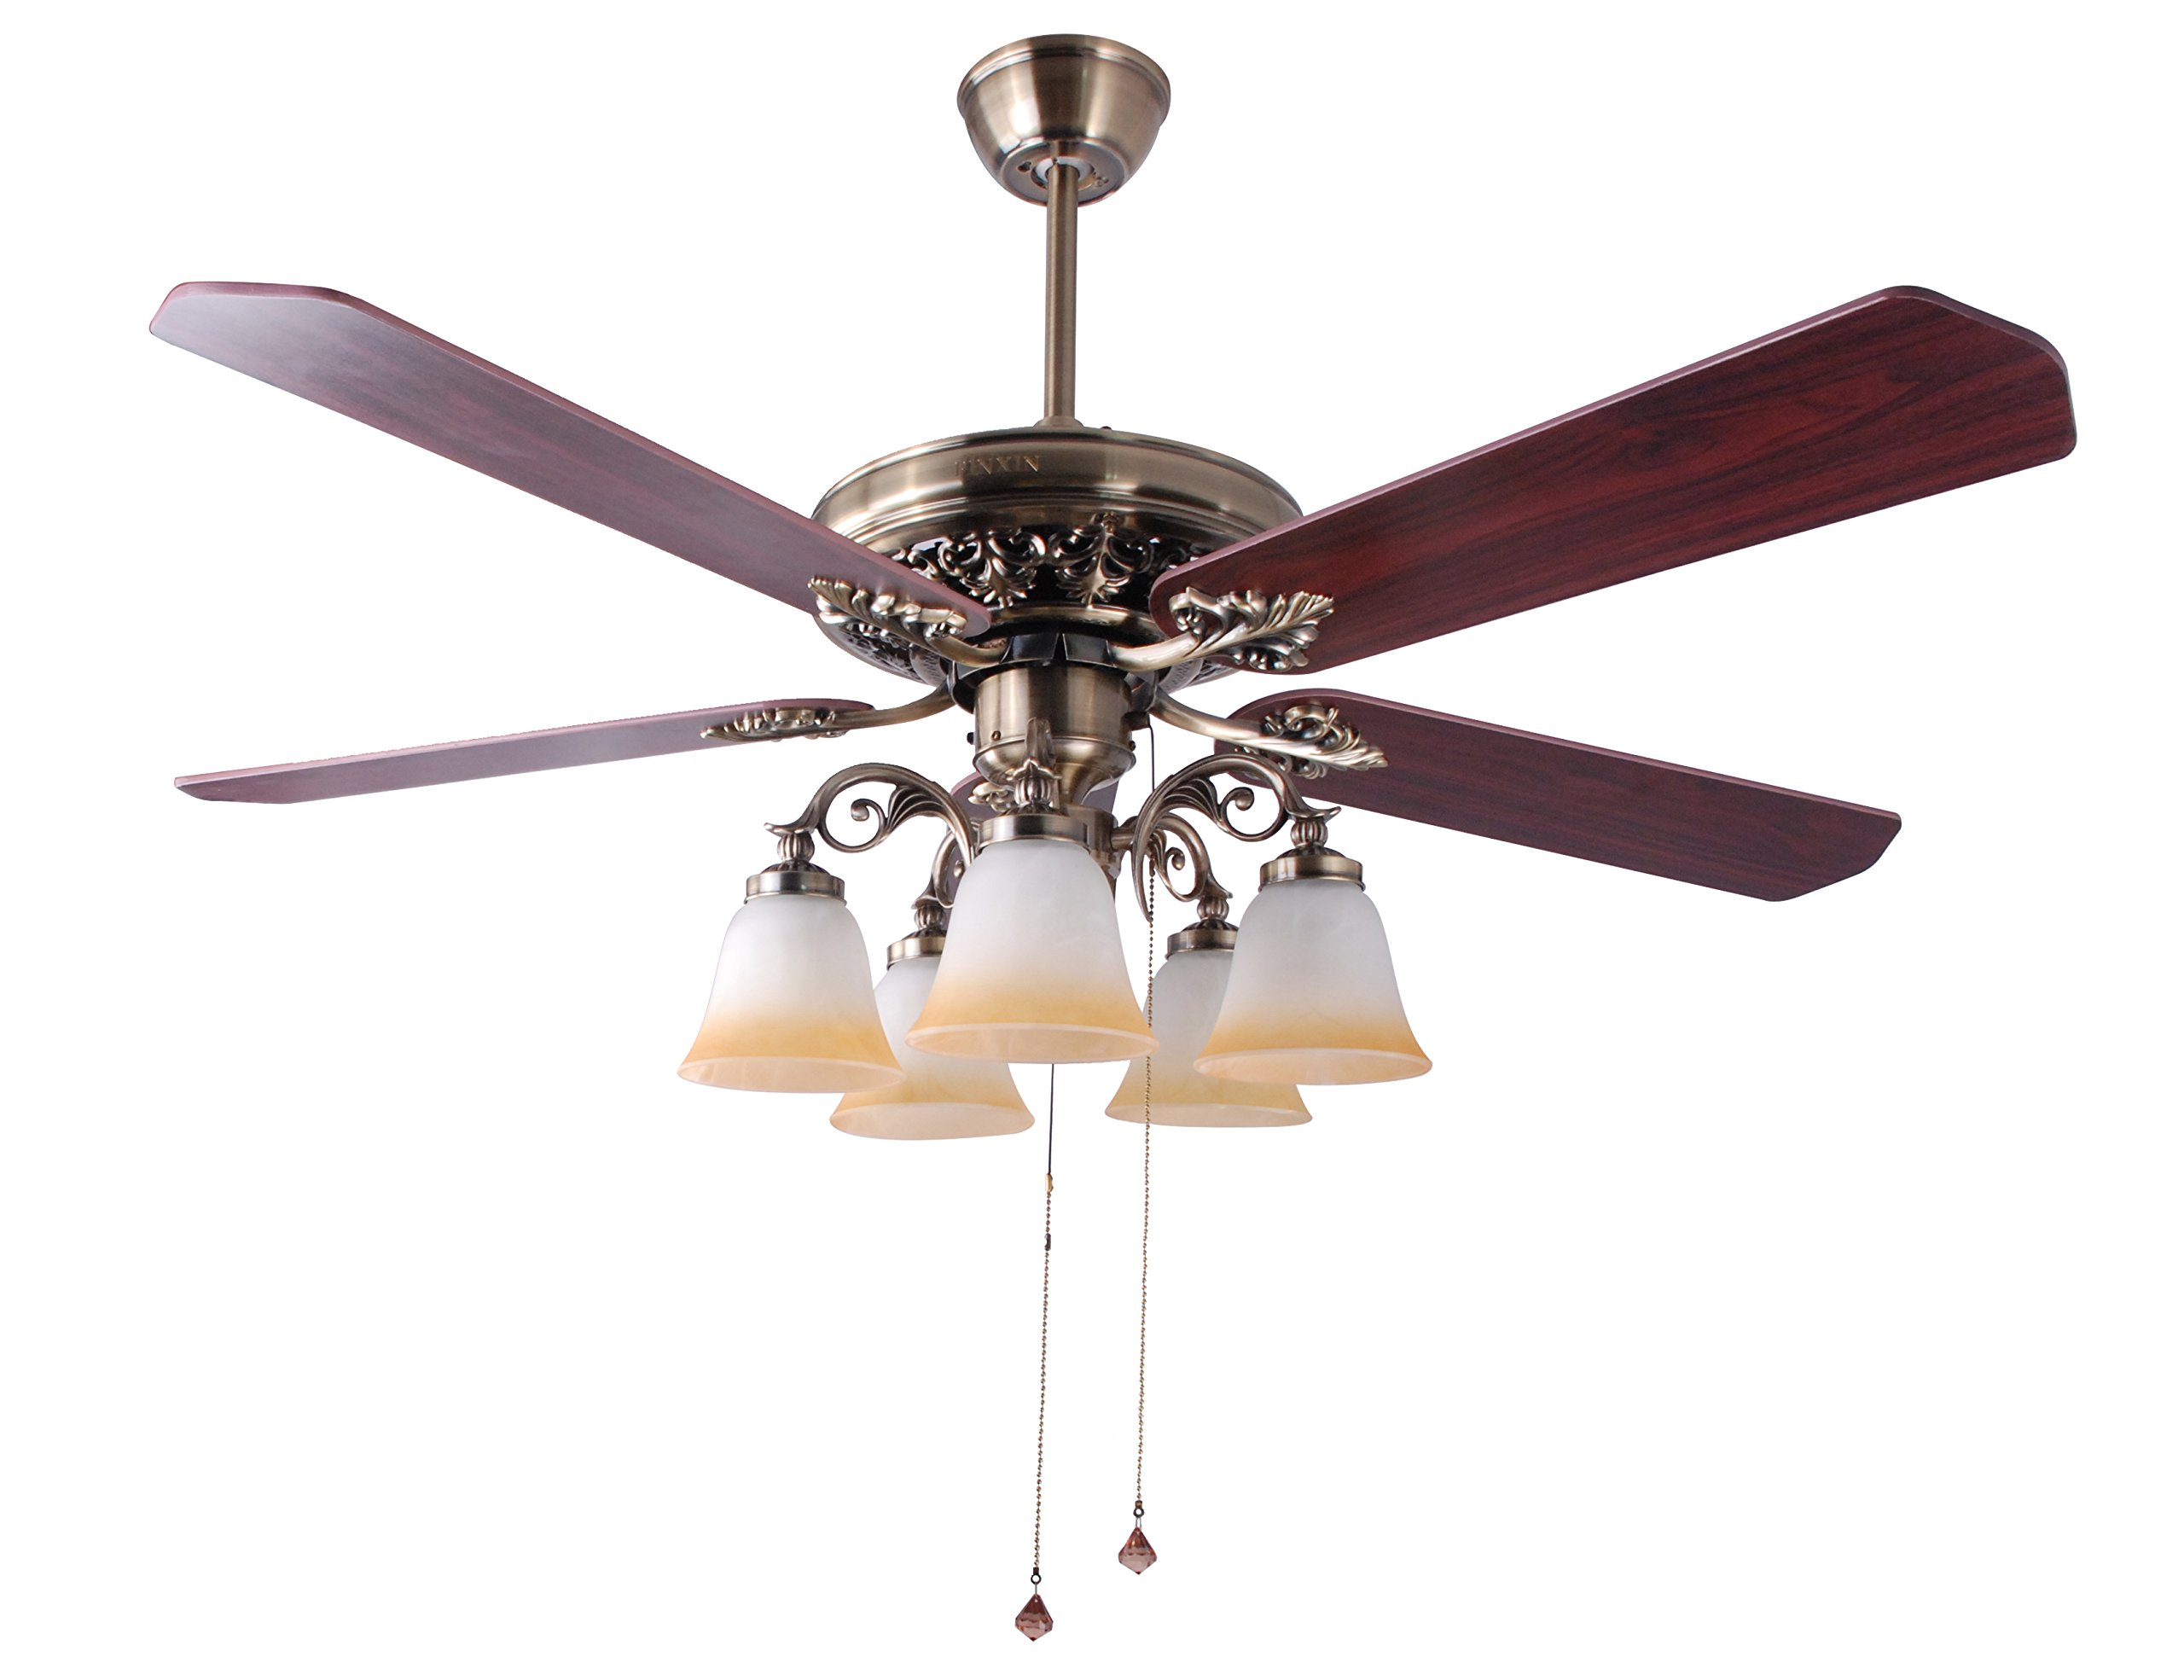 Indoor Ceiling Fan Light Fixtures - FINXIN FXCF03 (New Style) New Bronze Remote LED 52 Ceiling Fans For Bedroom,Living Room,Dining Room Including Motor,Light(5-LED 25W),5-Blades,Remote Switch